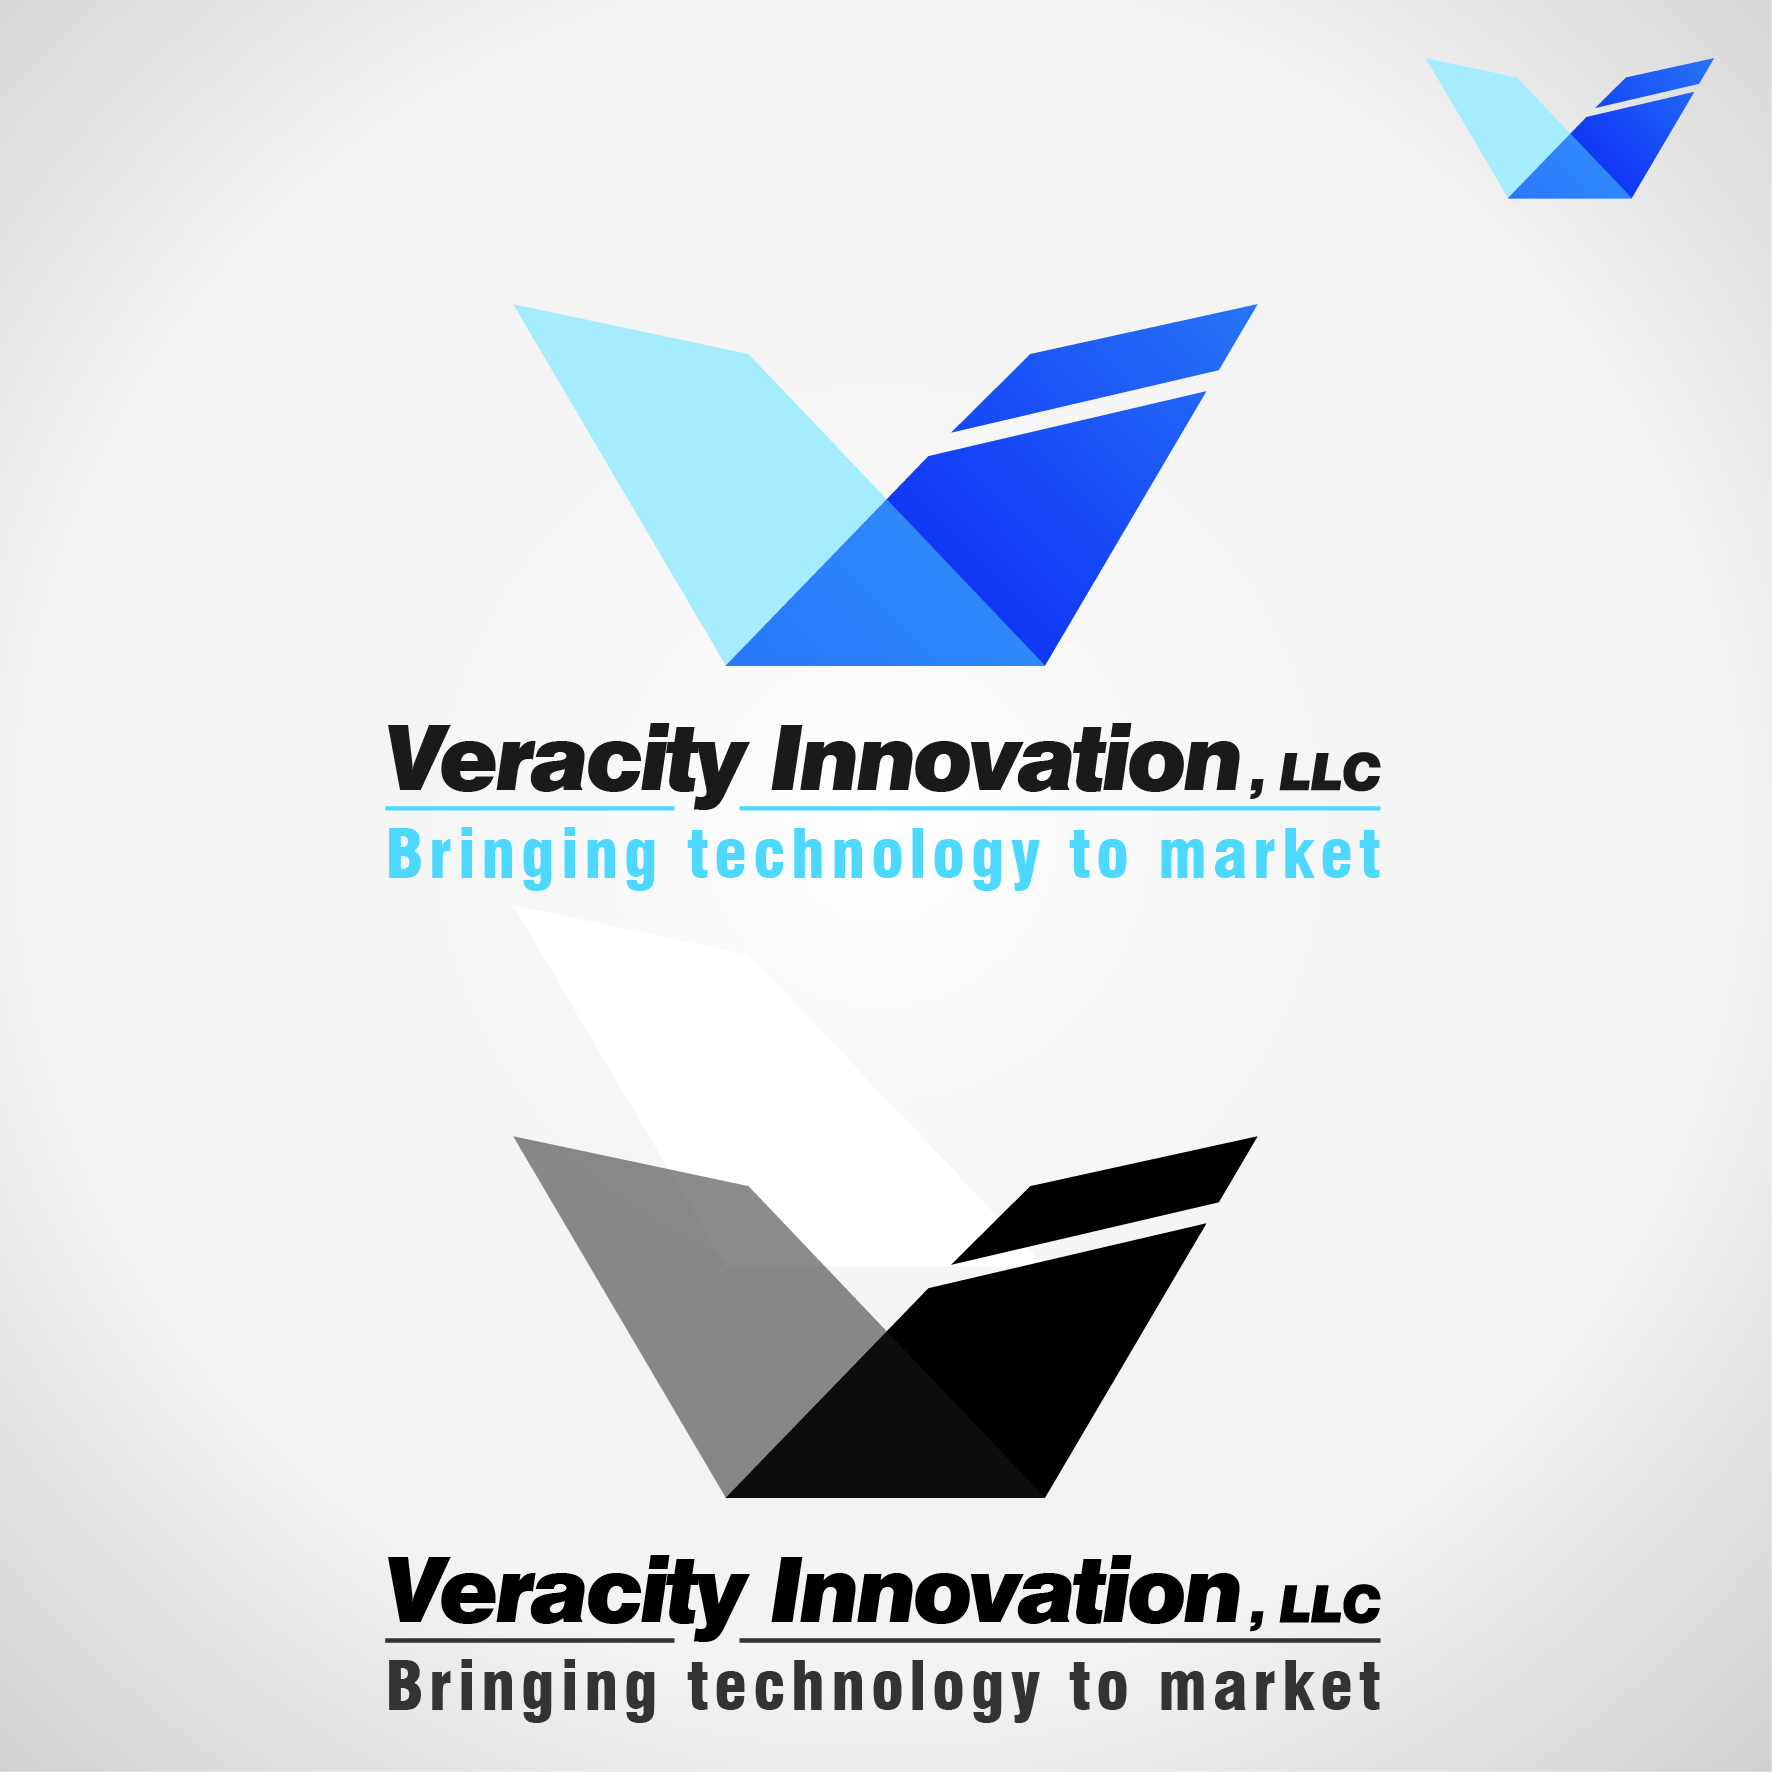 Logo Design by Faris Alsalahat - Entry No. 320 in the Logo Design Contest Creative Logo Design for Veracity Innovation, LLC.